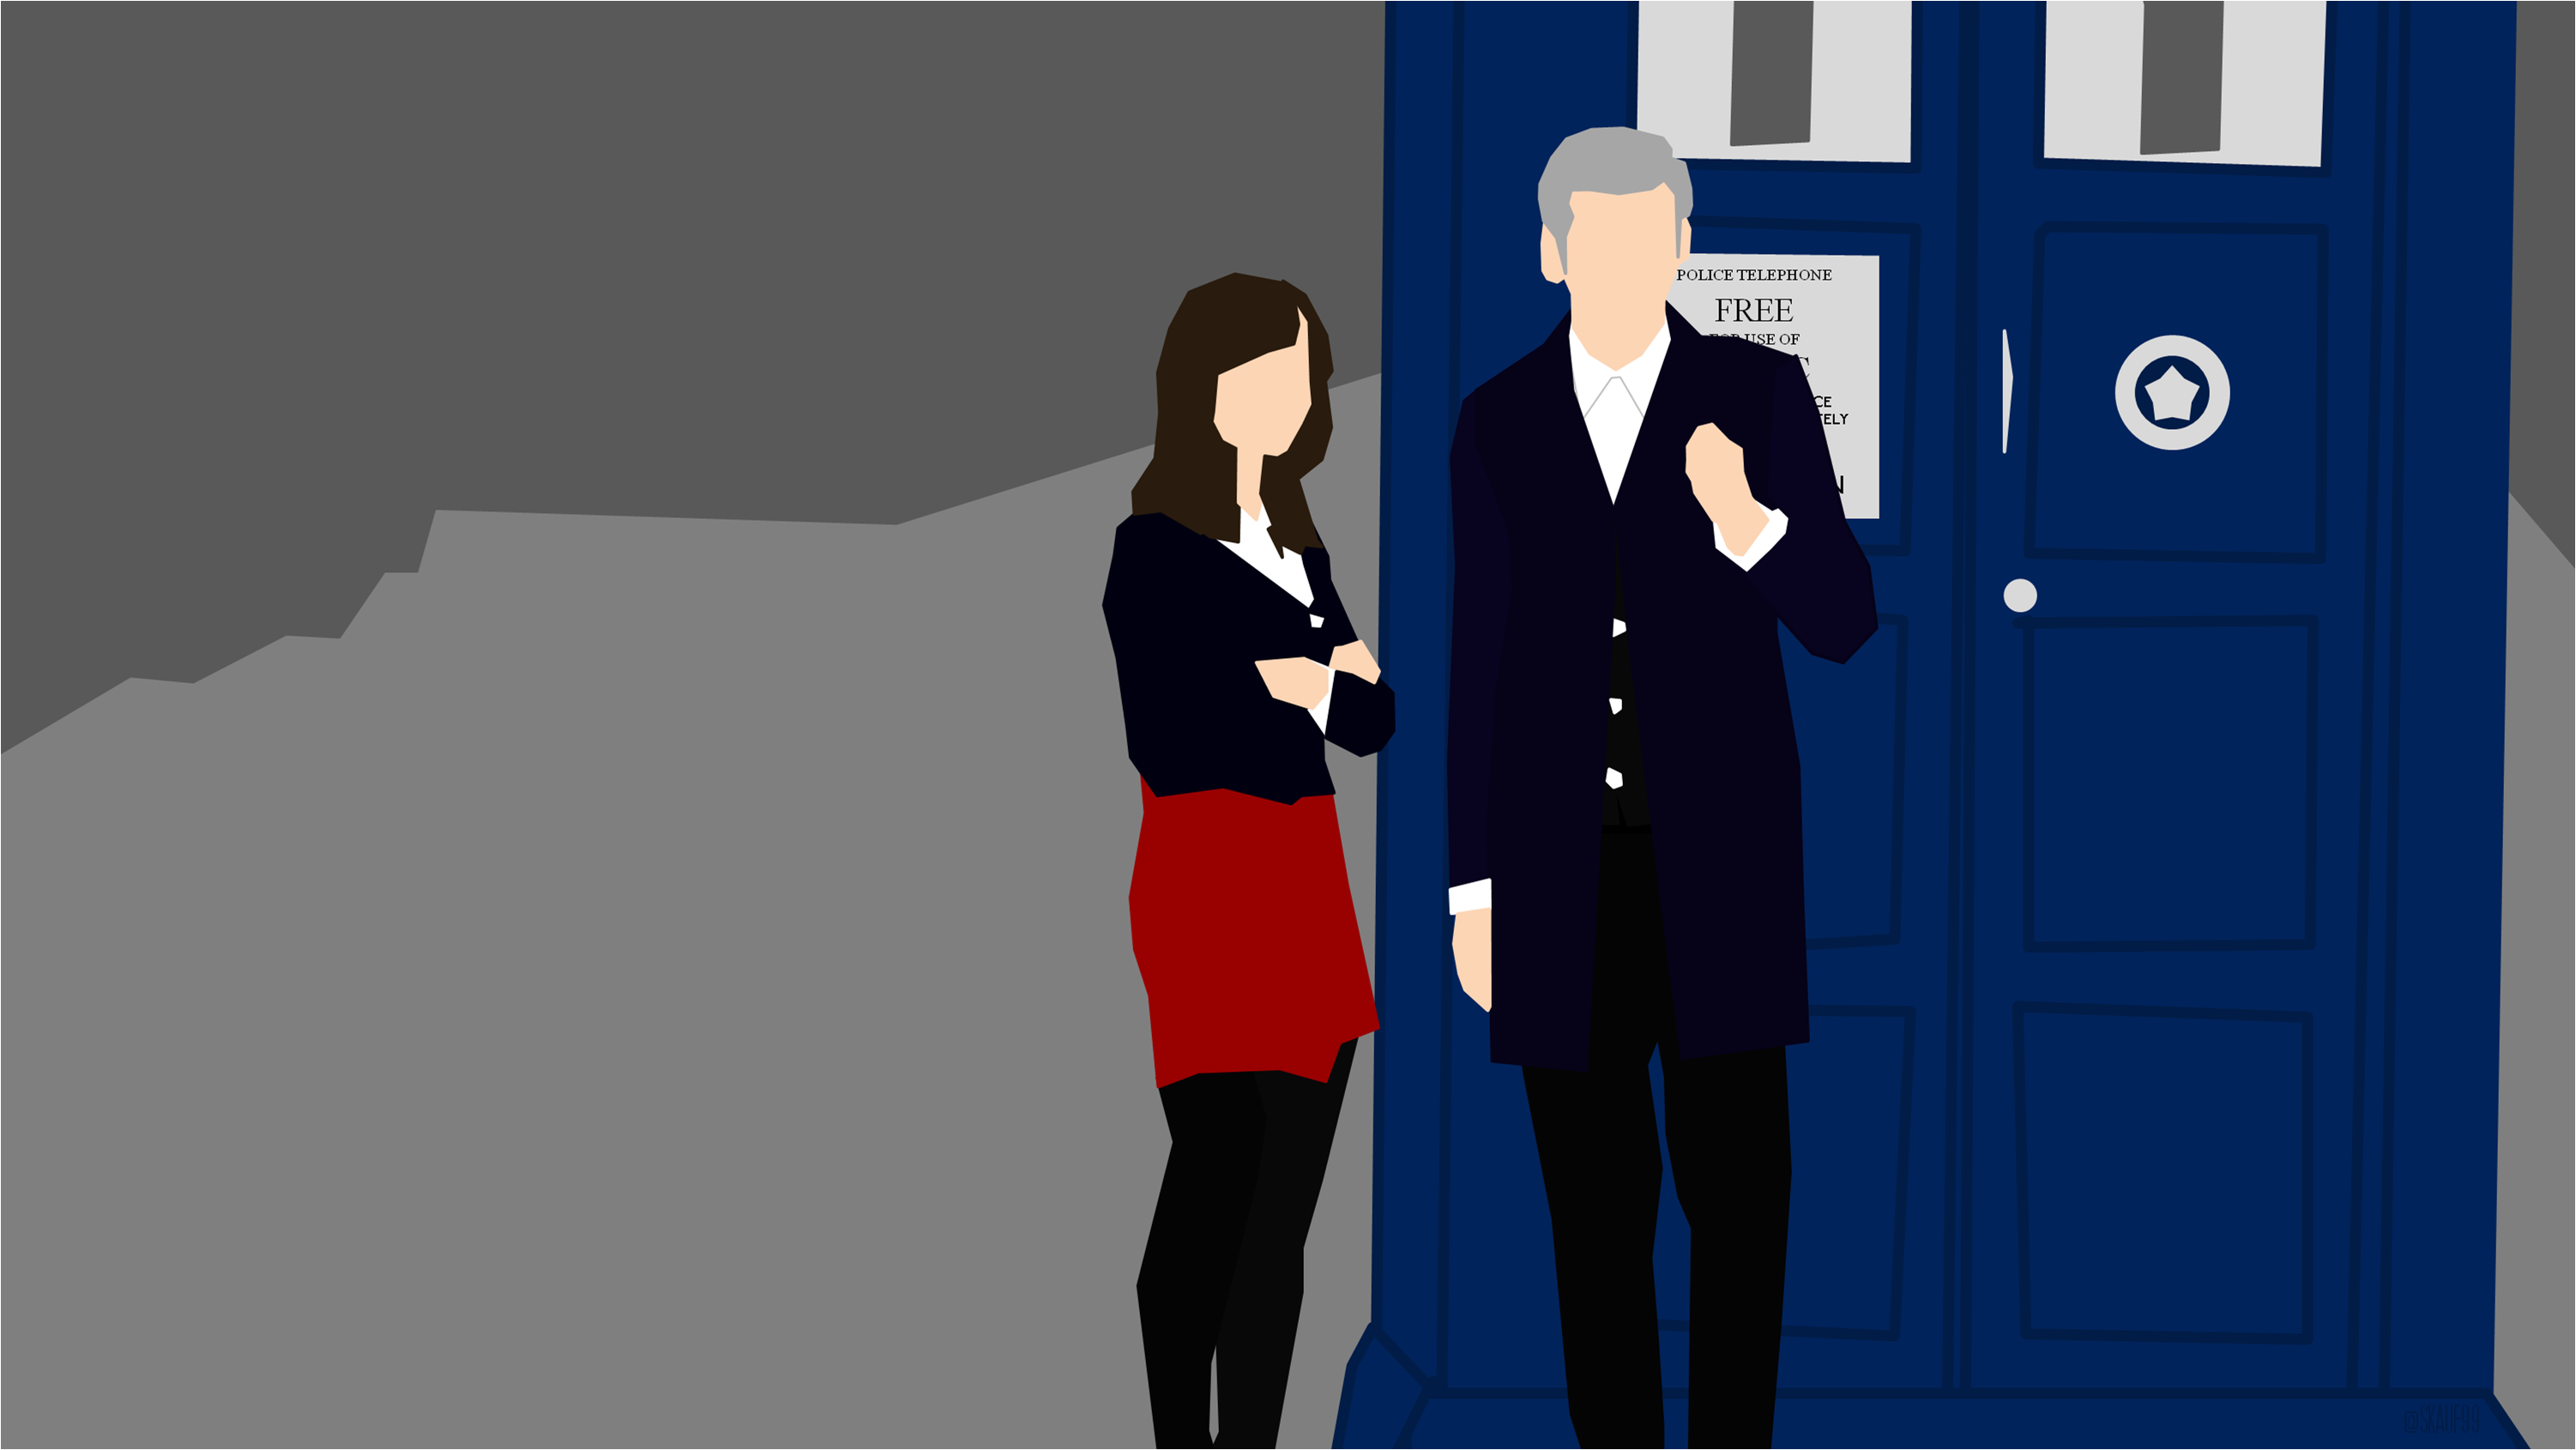 dr who wallpaper 8 - photo #19